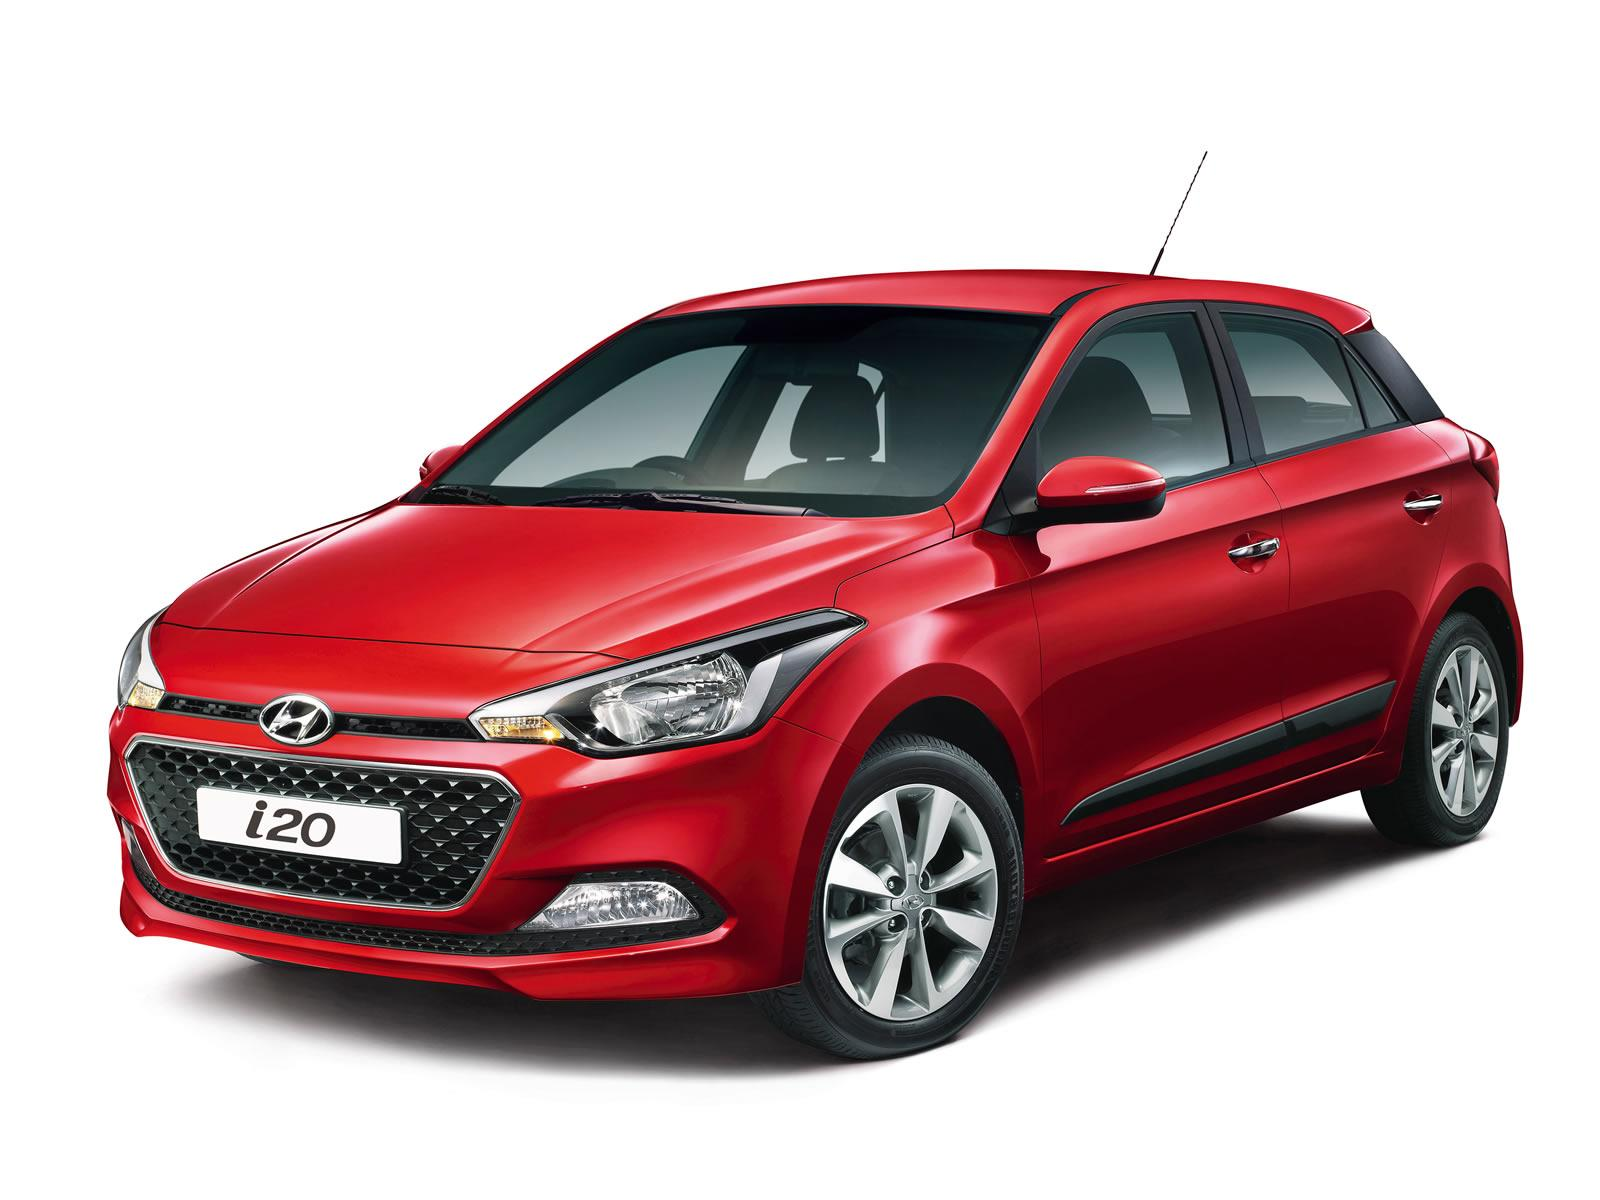 2015 Hyundai I20 Officially Unveiled Turkeycarblog